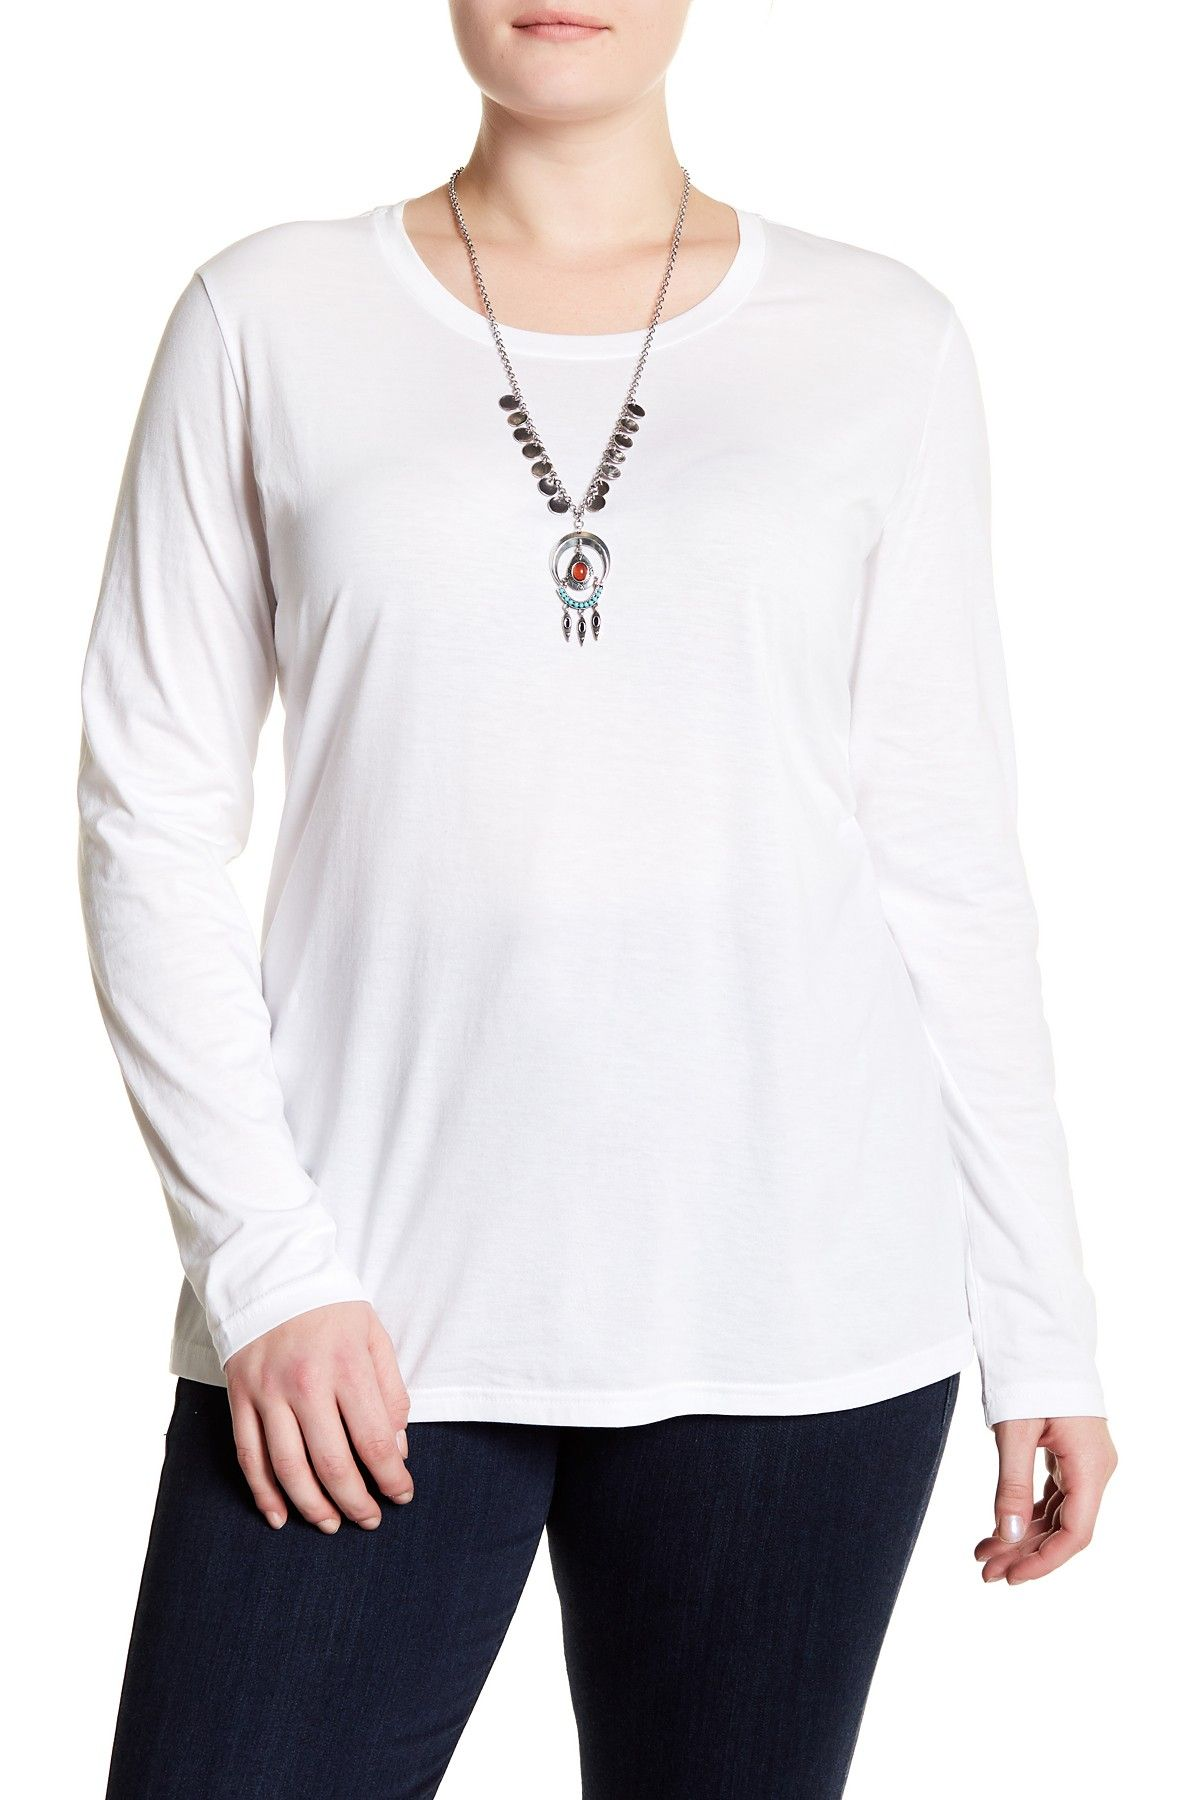 6edc72fcf42ba SUSINA - Long Sleeve Cotton Layering Tee (Plus Size). Free Shipping on  orders over  100.